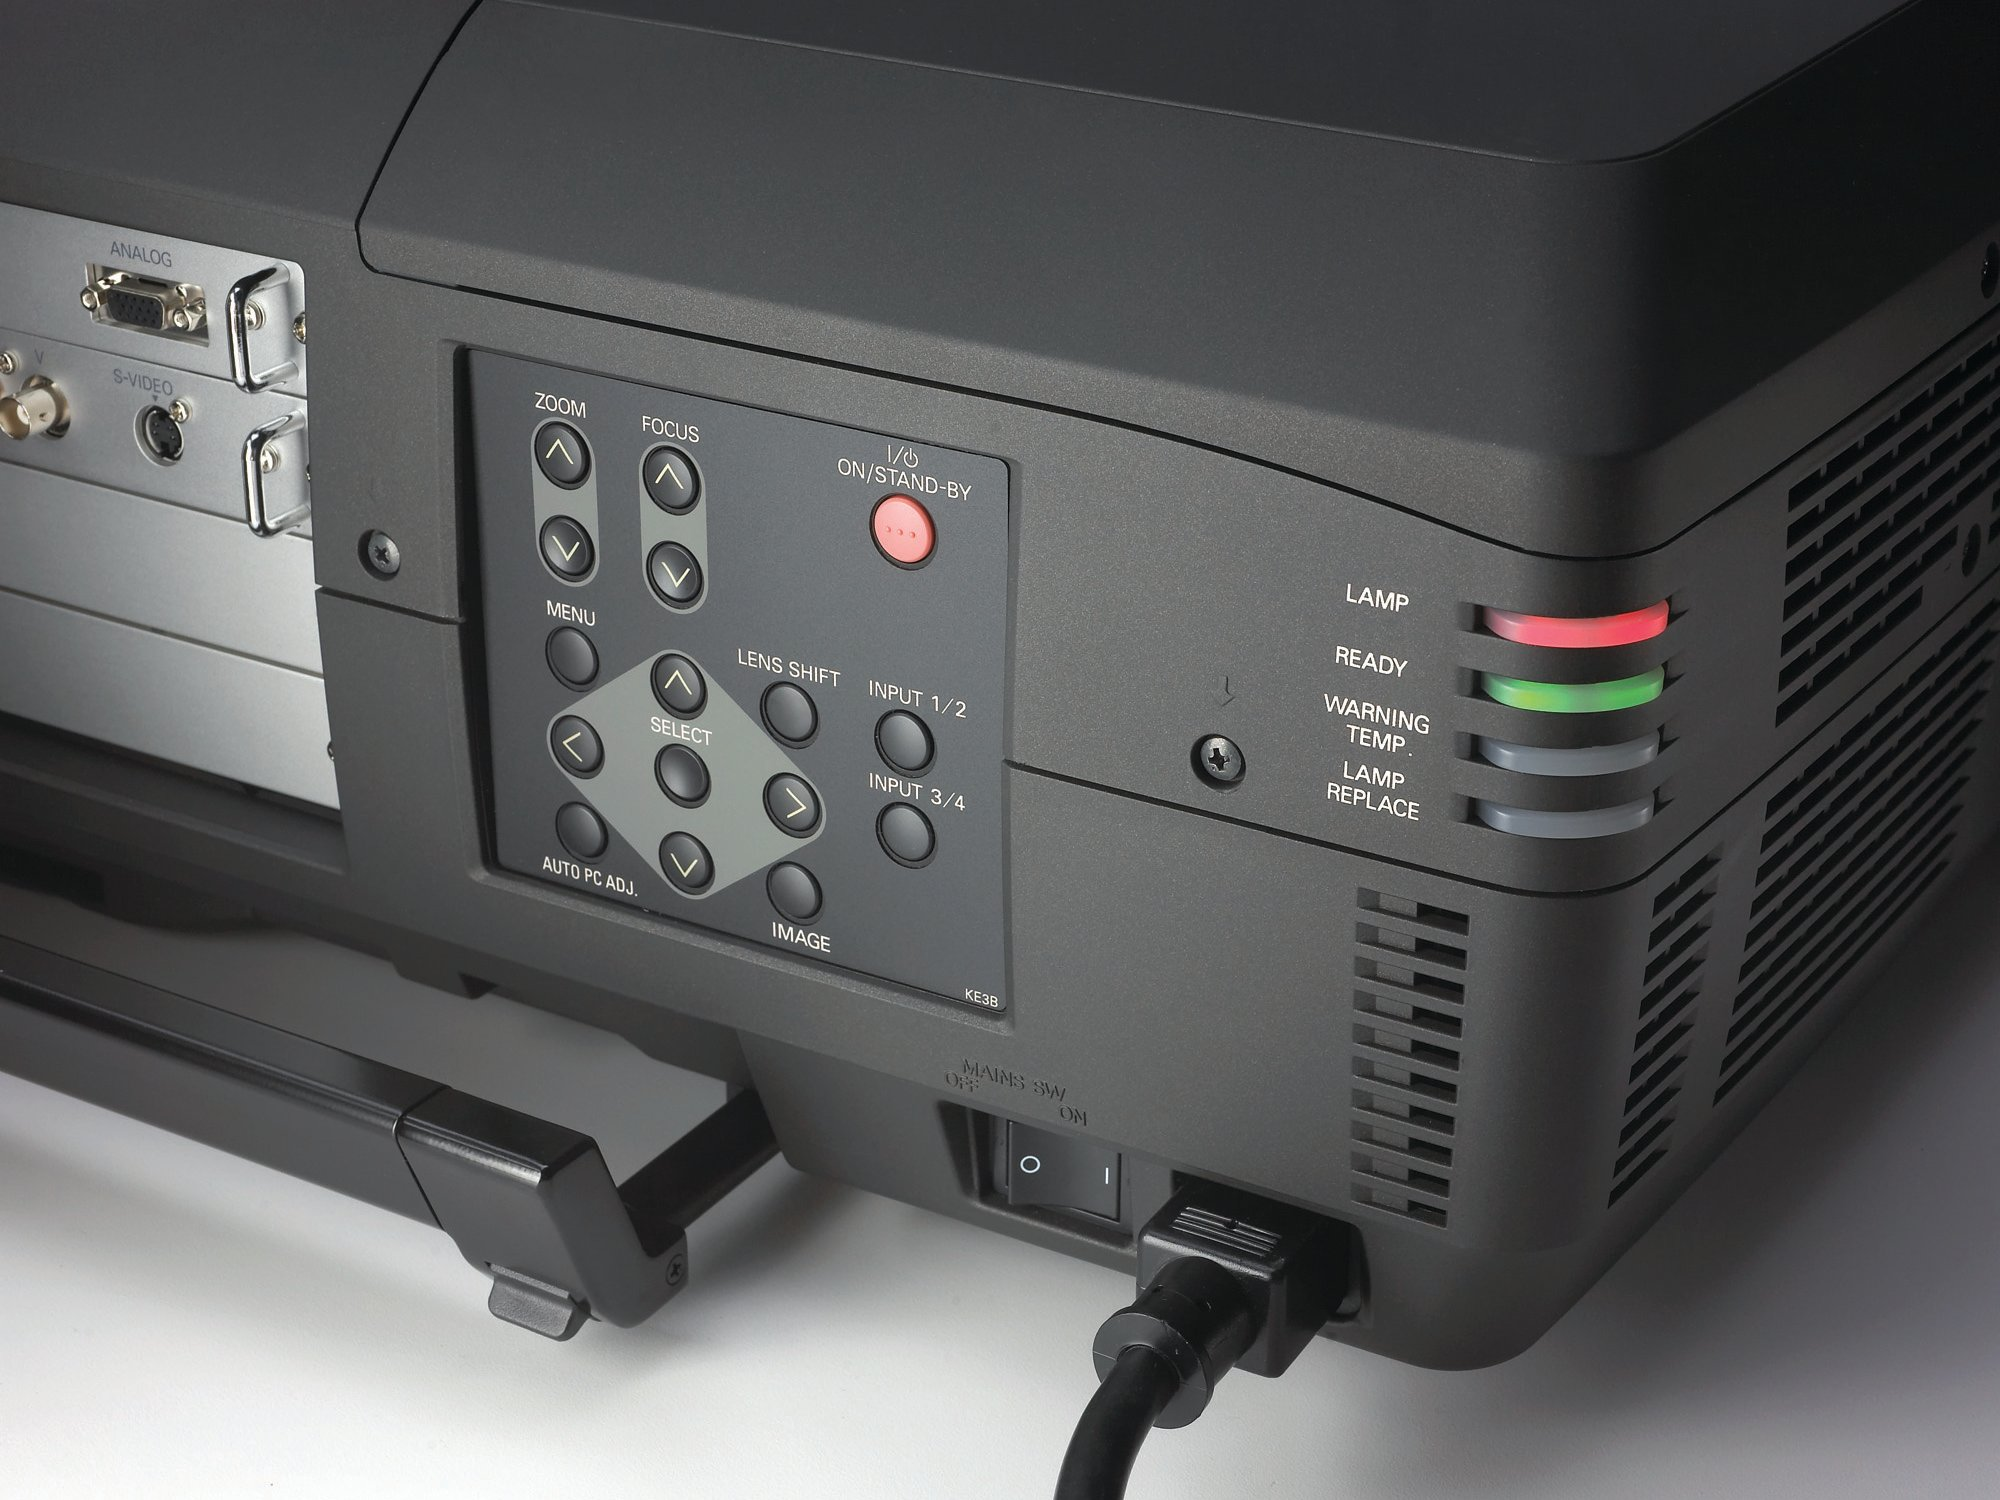 /globalassets/.catalog/products/images/christie-lx1500/gallery/christie-lx1500-lcd-projector-controlpanel_handle_out.jpg